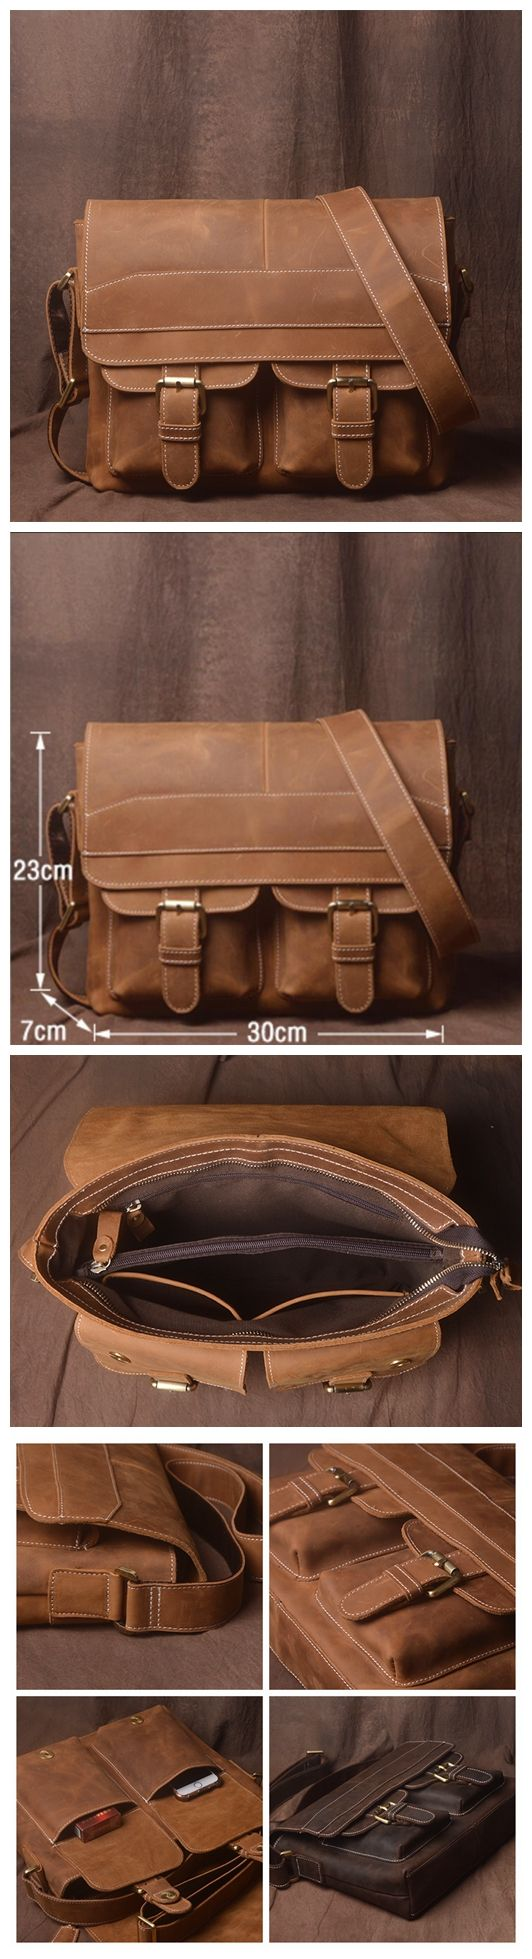 Handmade Genuine Leather Messenger Bag, Handmade Leather Bag, Business Bag JZ004